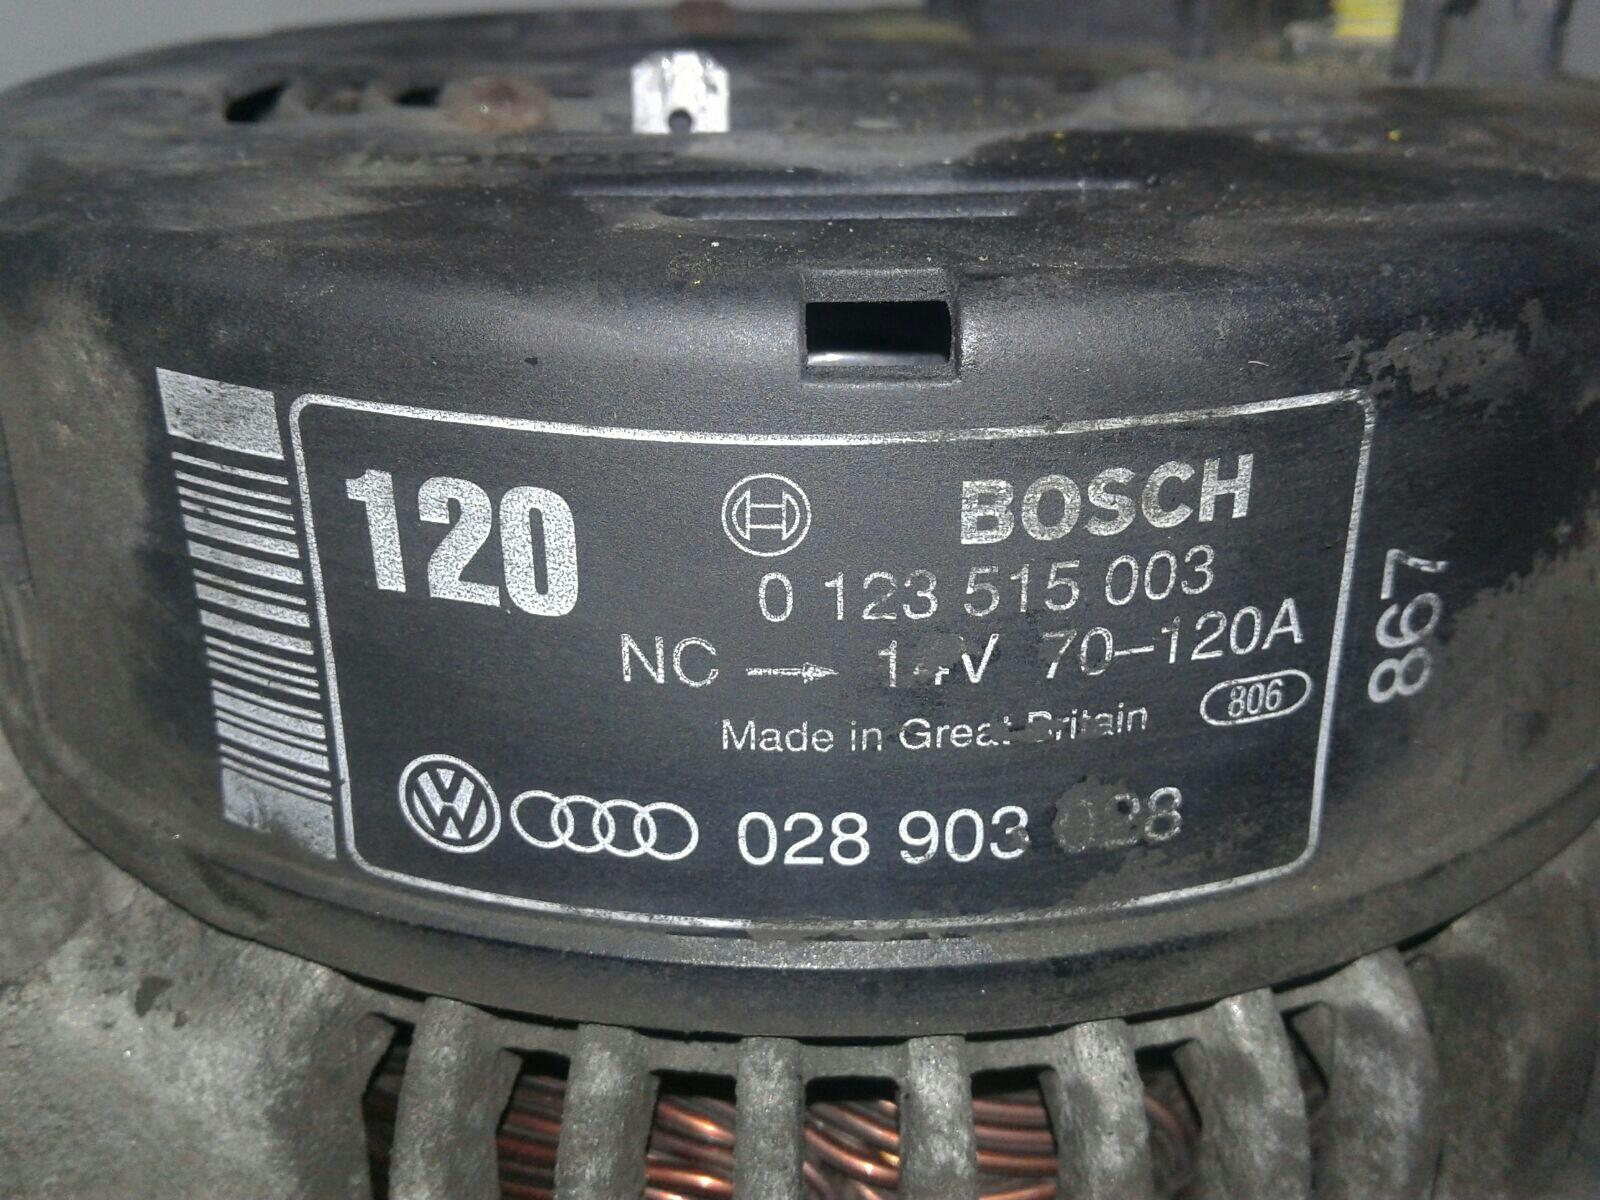 Audi A6 1997 To 2000 Alternator Diesel Manual For Sale From Se Tdi 19 Afn Warranty 7313516